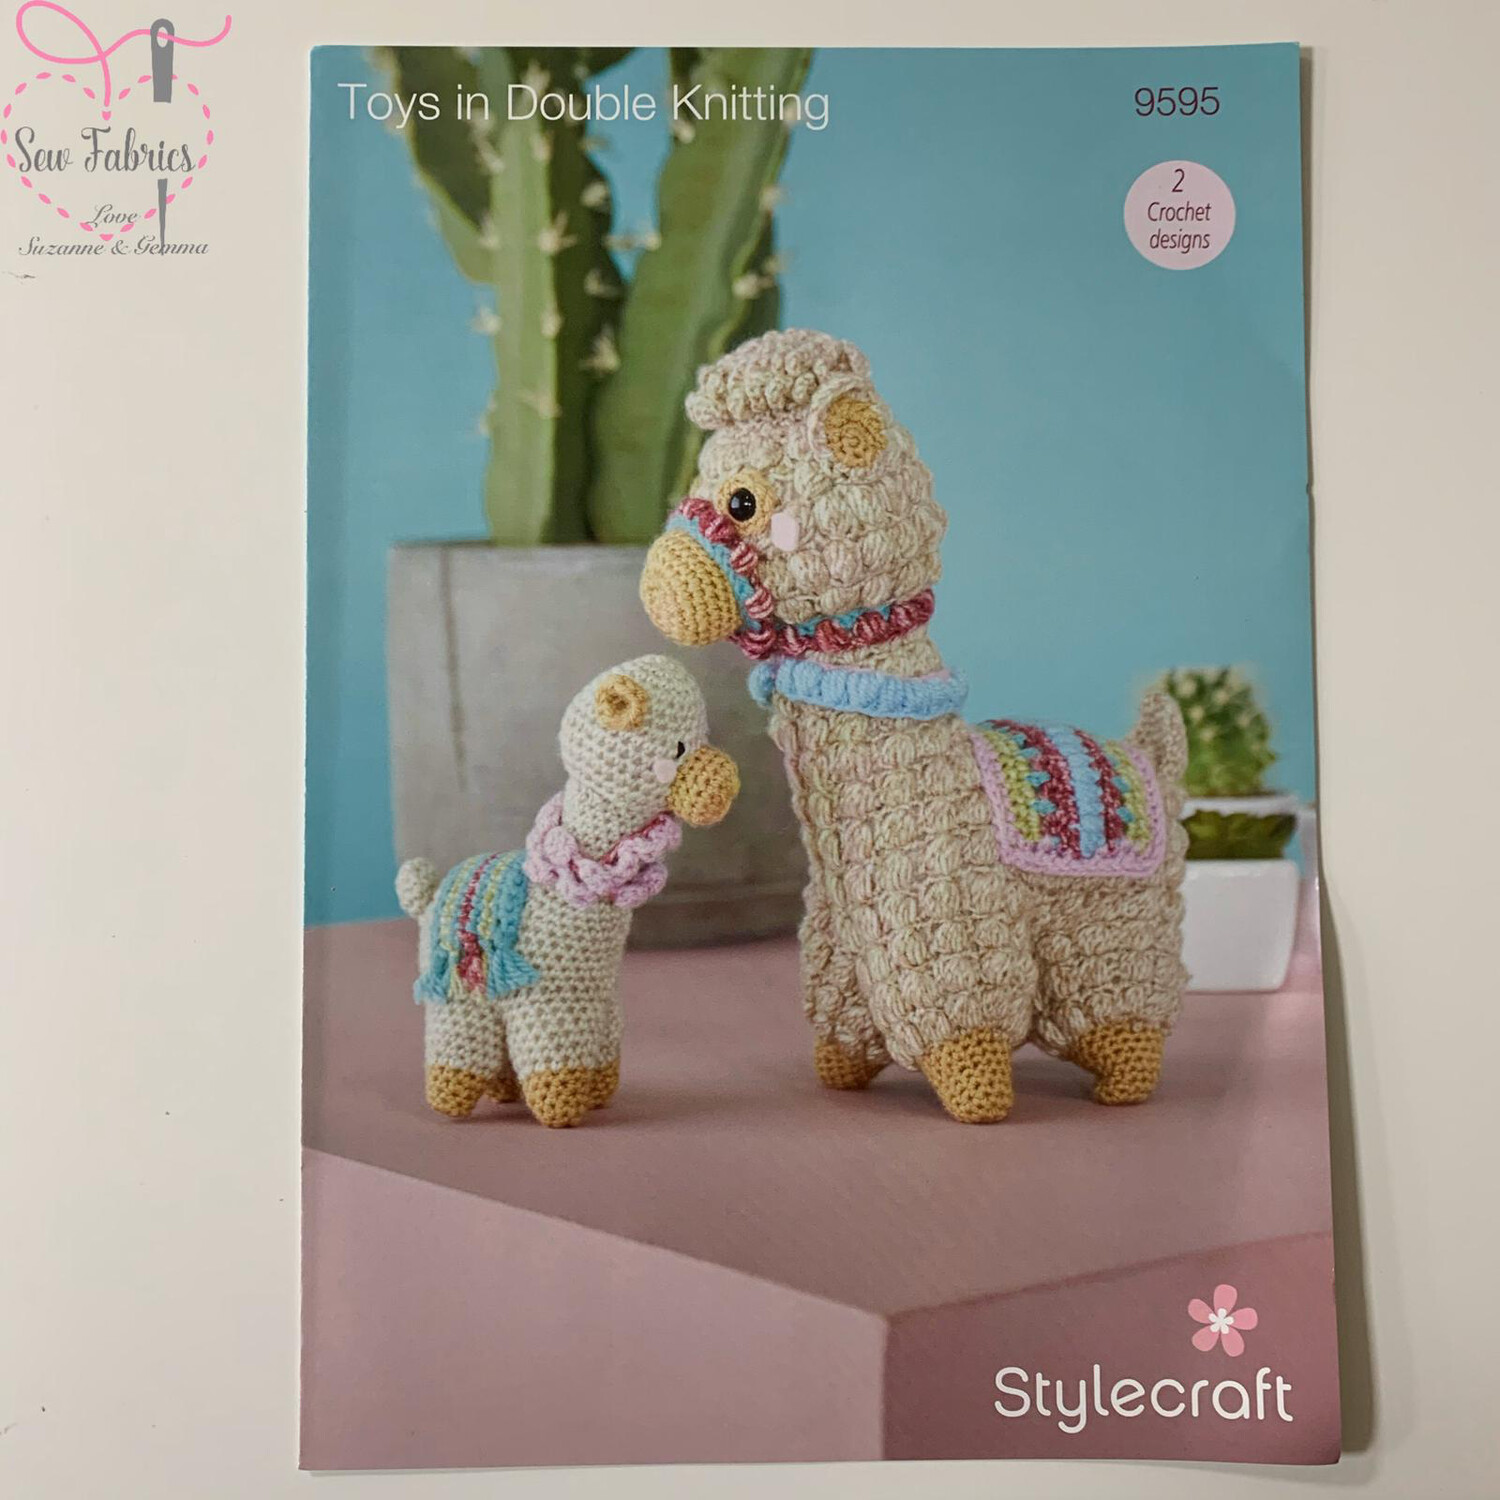 Llama and Baby Toys - Stylecraft Crochet Printed Pattern